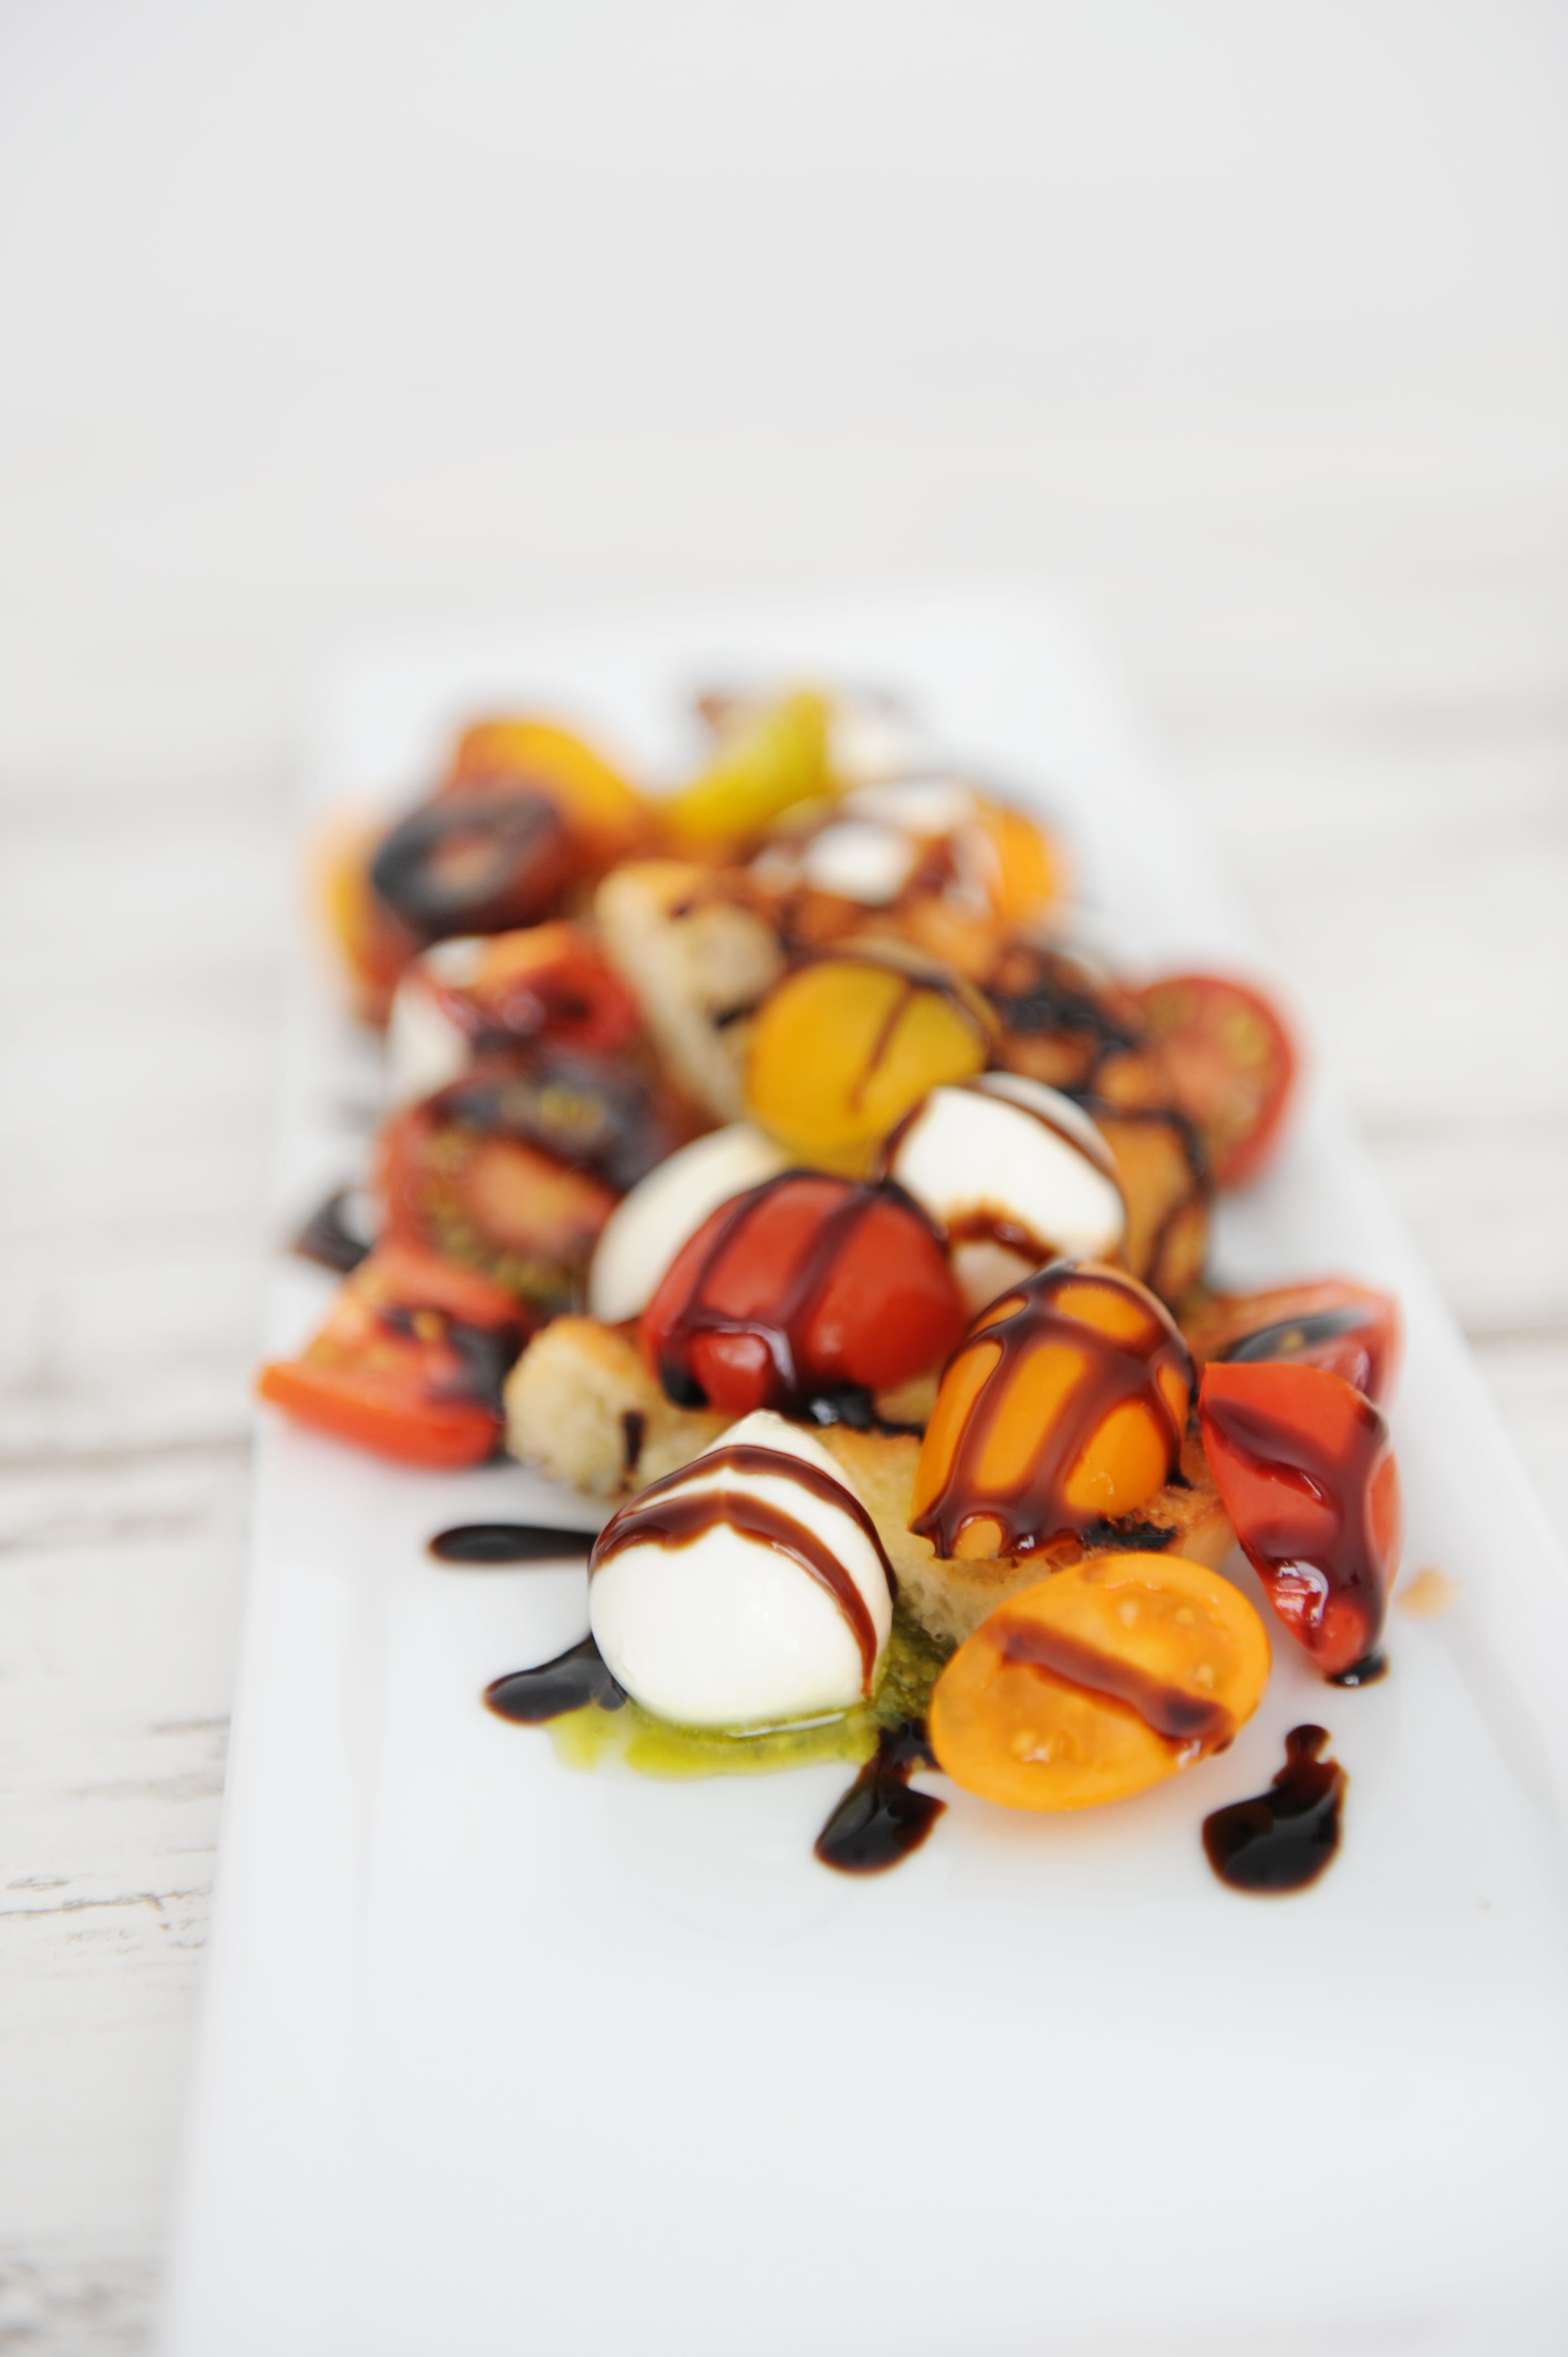 Easy burrata and heirloom tomatoes appetizer recipe step 4